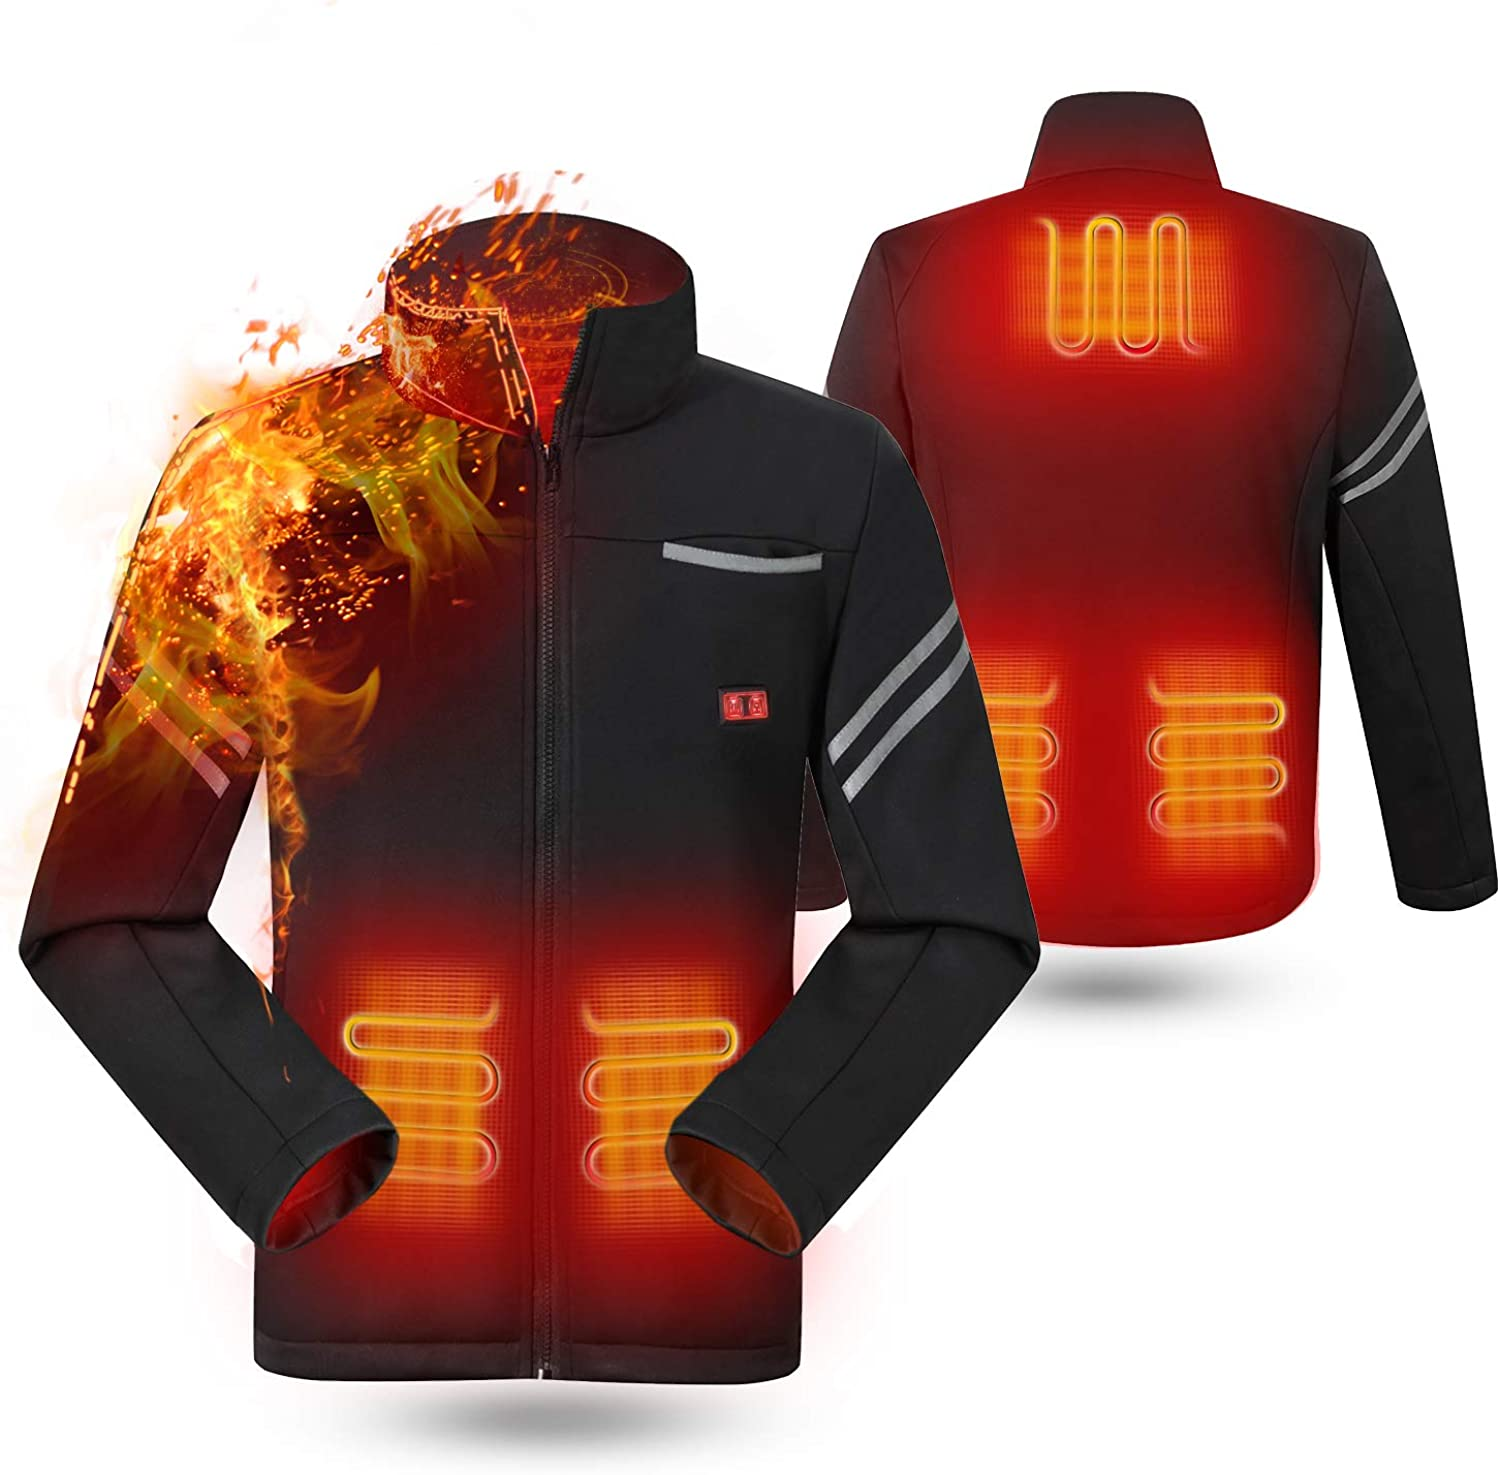 Warming Heated Vest for Men Winter Heated Clothing for Women (No Battery)